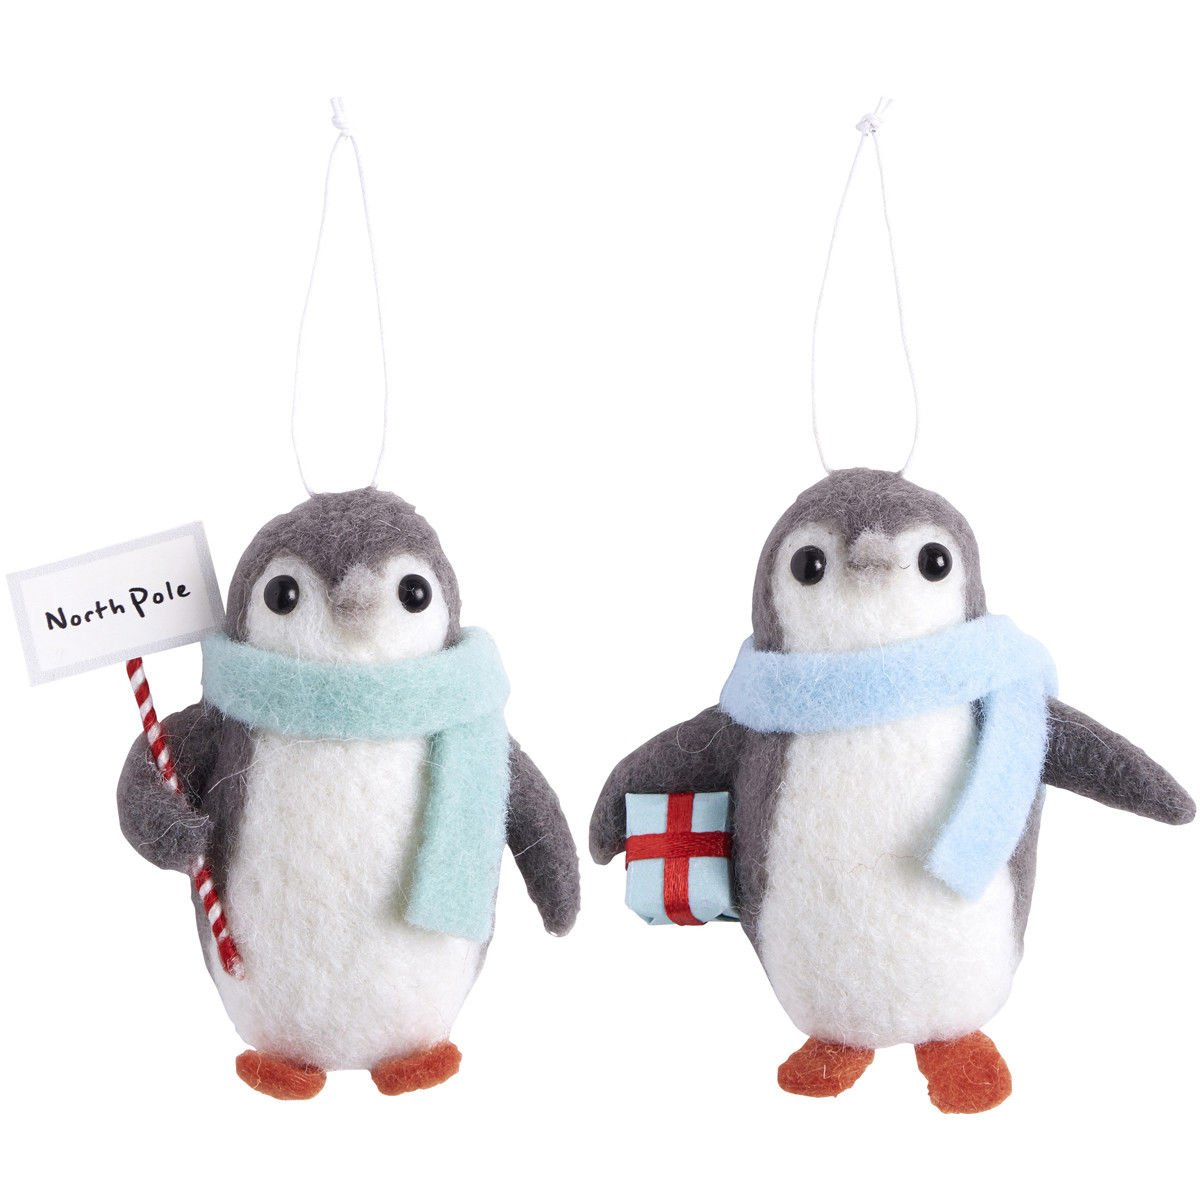 Homes on Trend Set Two Felt Vintage Style Hanging Winter Penguin Christmas Tree Decorations